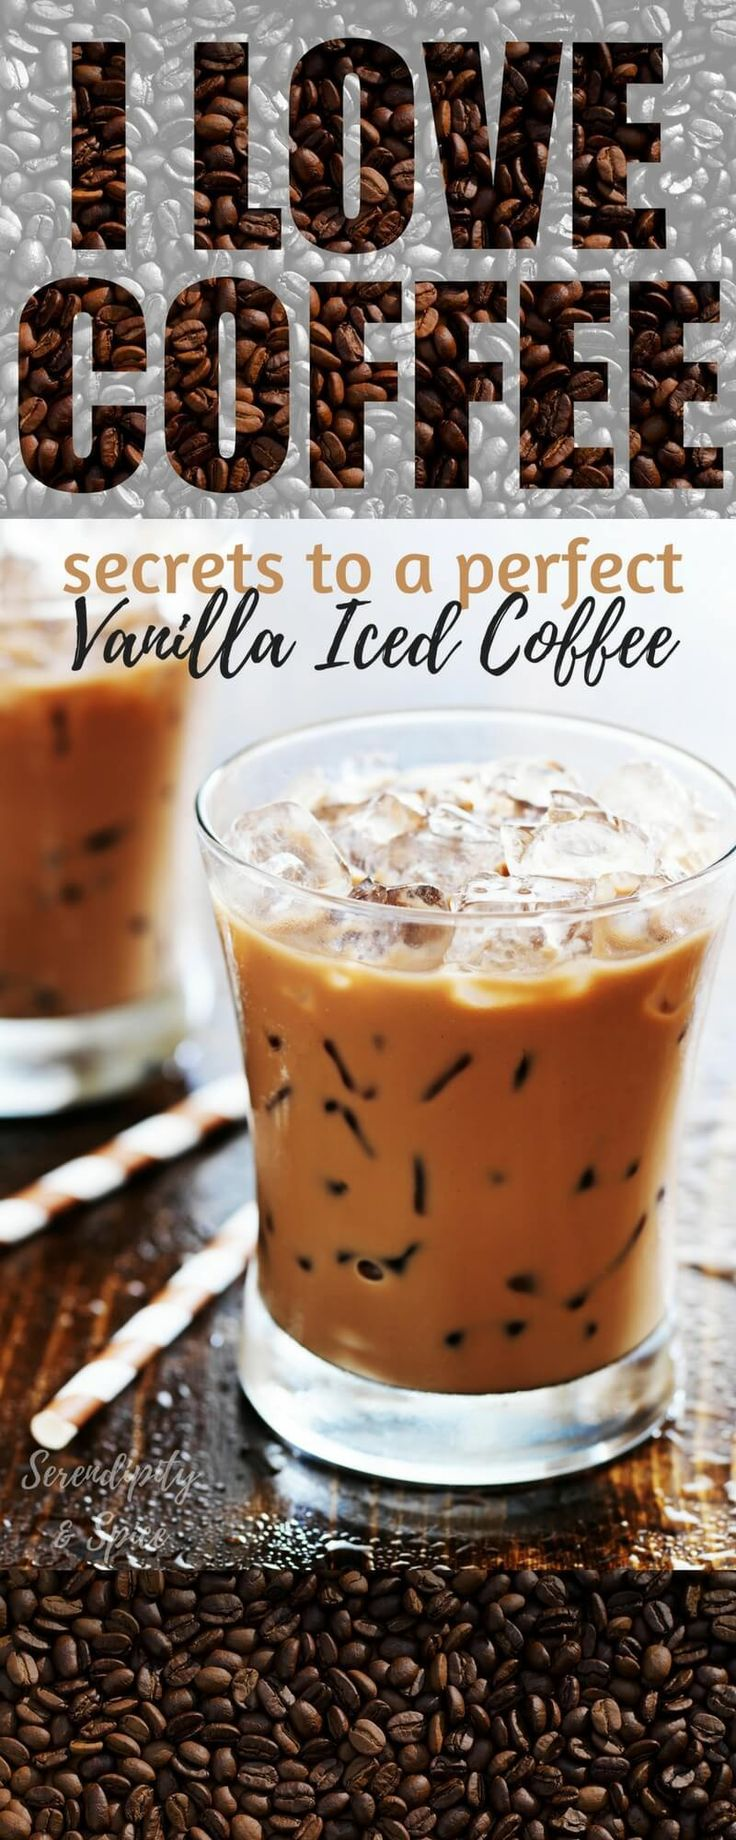 7 Secrets to Perfect Iced Coffee ~ including a recipe for the perfect cup of Vanilla Iced Coffee...you'll never believe it's instant!  A delicious and easy drink recipe for a hot day. http://serendipityandspice.com